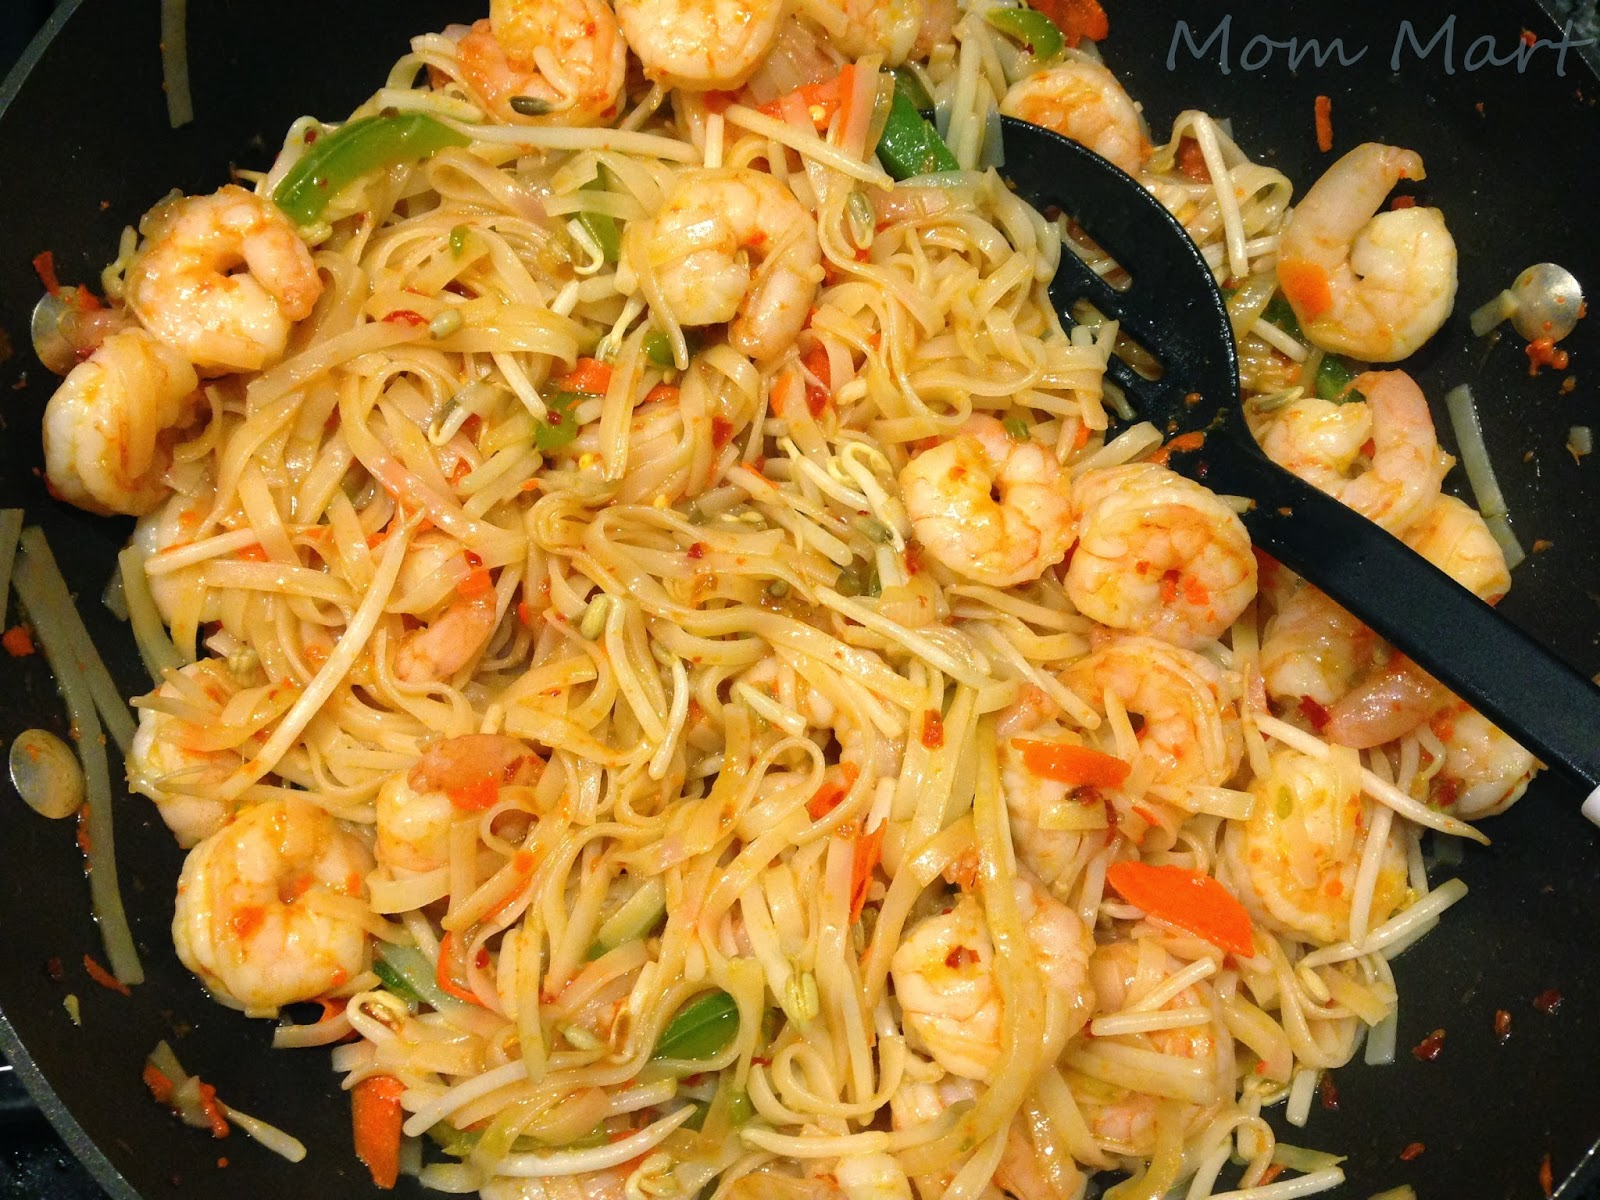 Mom mart keeping dinner light with thai shrimp noodles What to make with shrimp for dinner